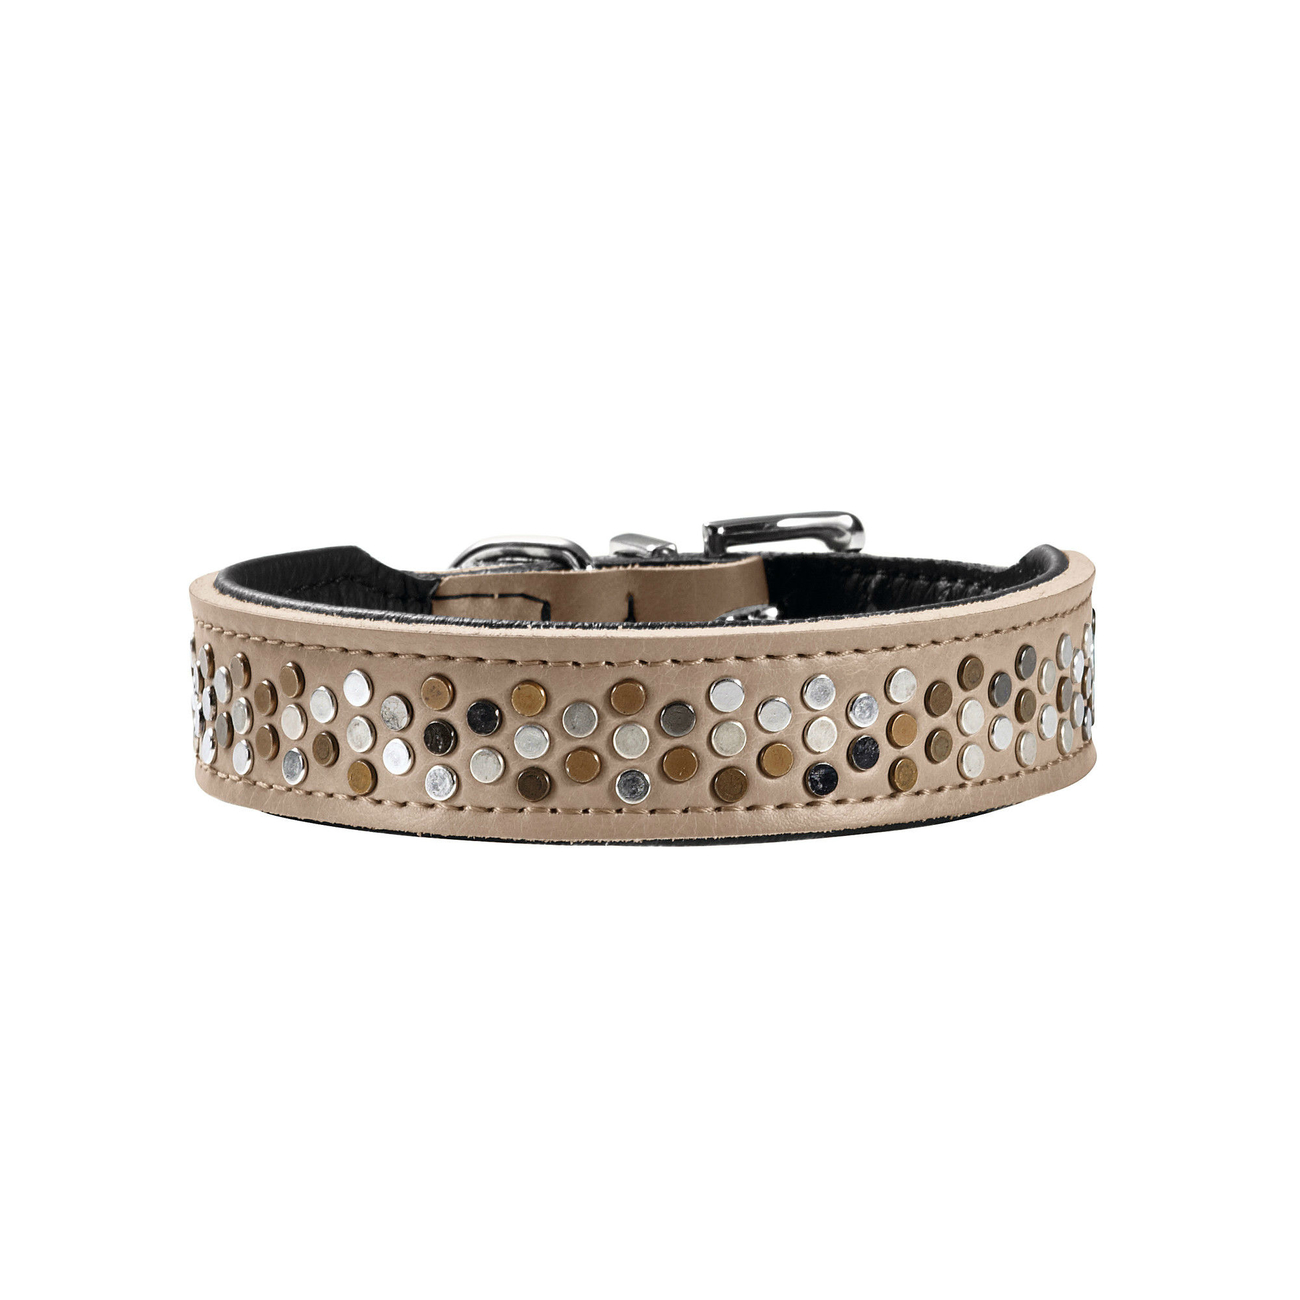 Hunter Rivellino Halsband 60079, Bild 5